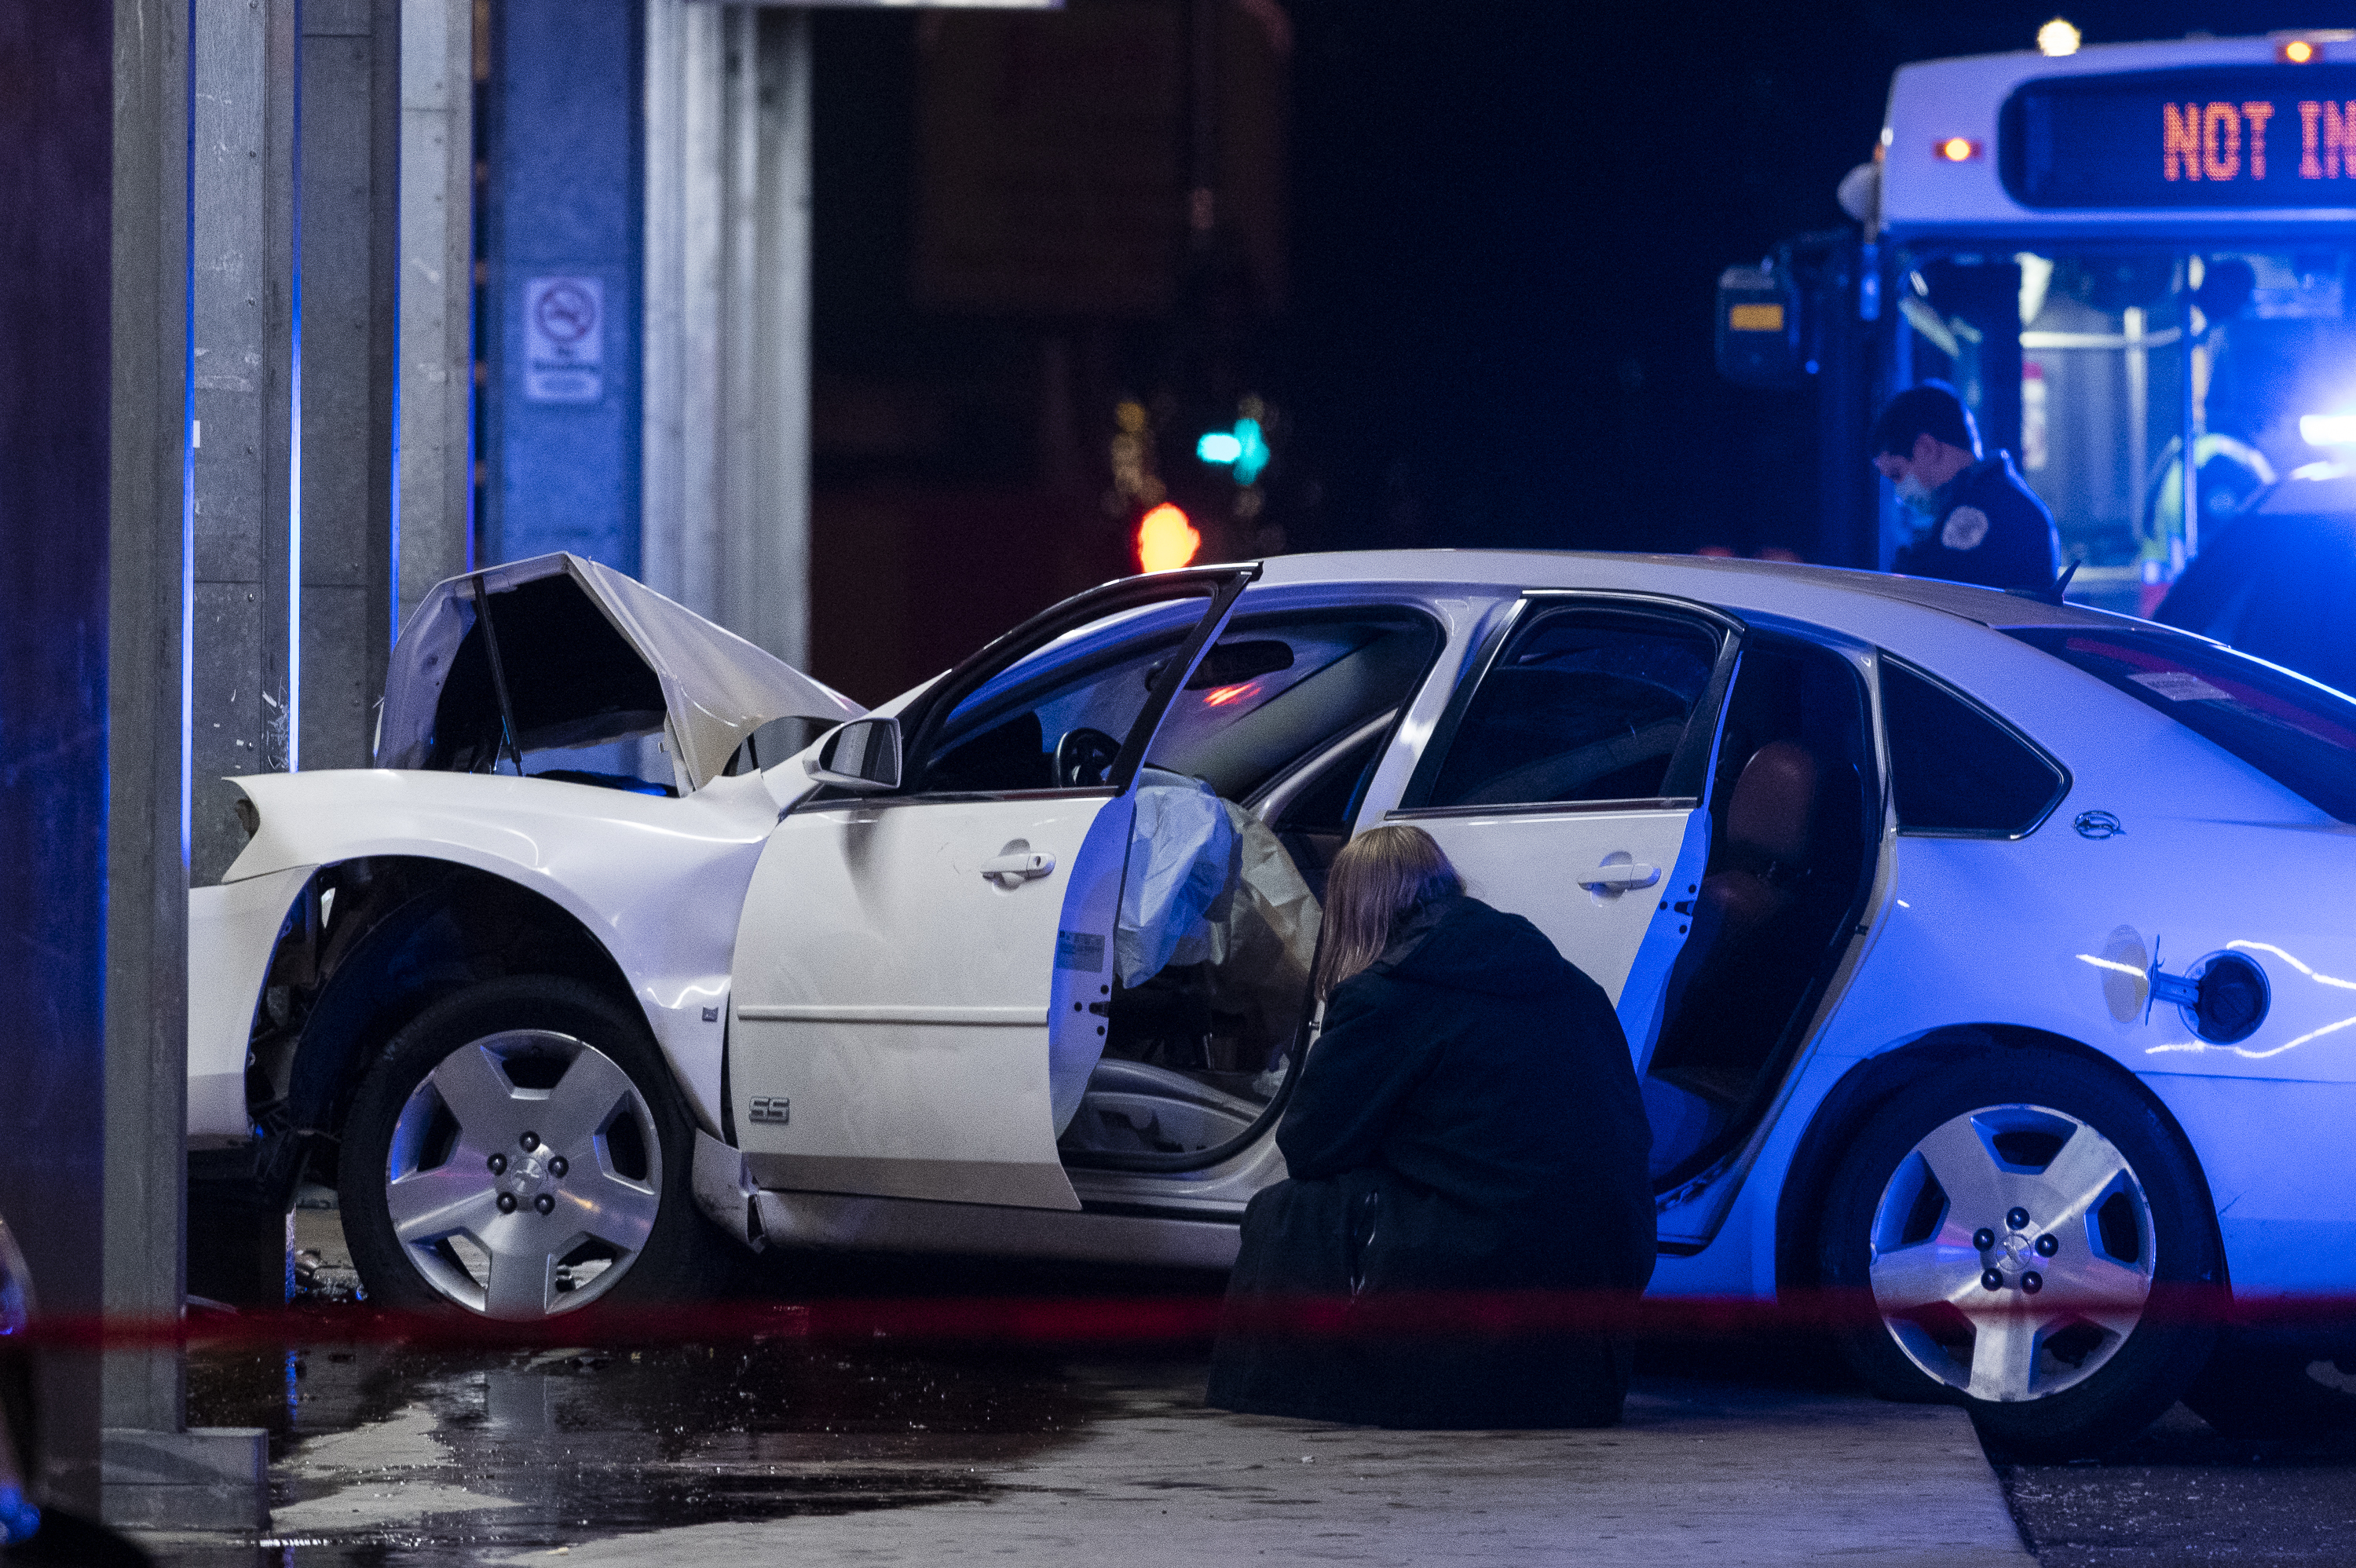 Chicago police investigate the scene where a police officer was dragged by a white Impala at the 95th and Dan Ryan Red Line station Nov. 23, 2020.